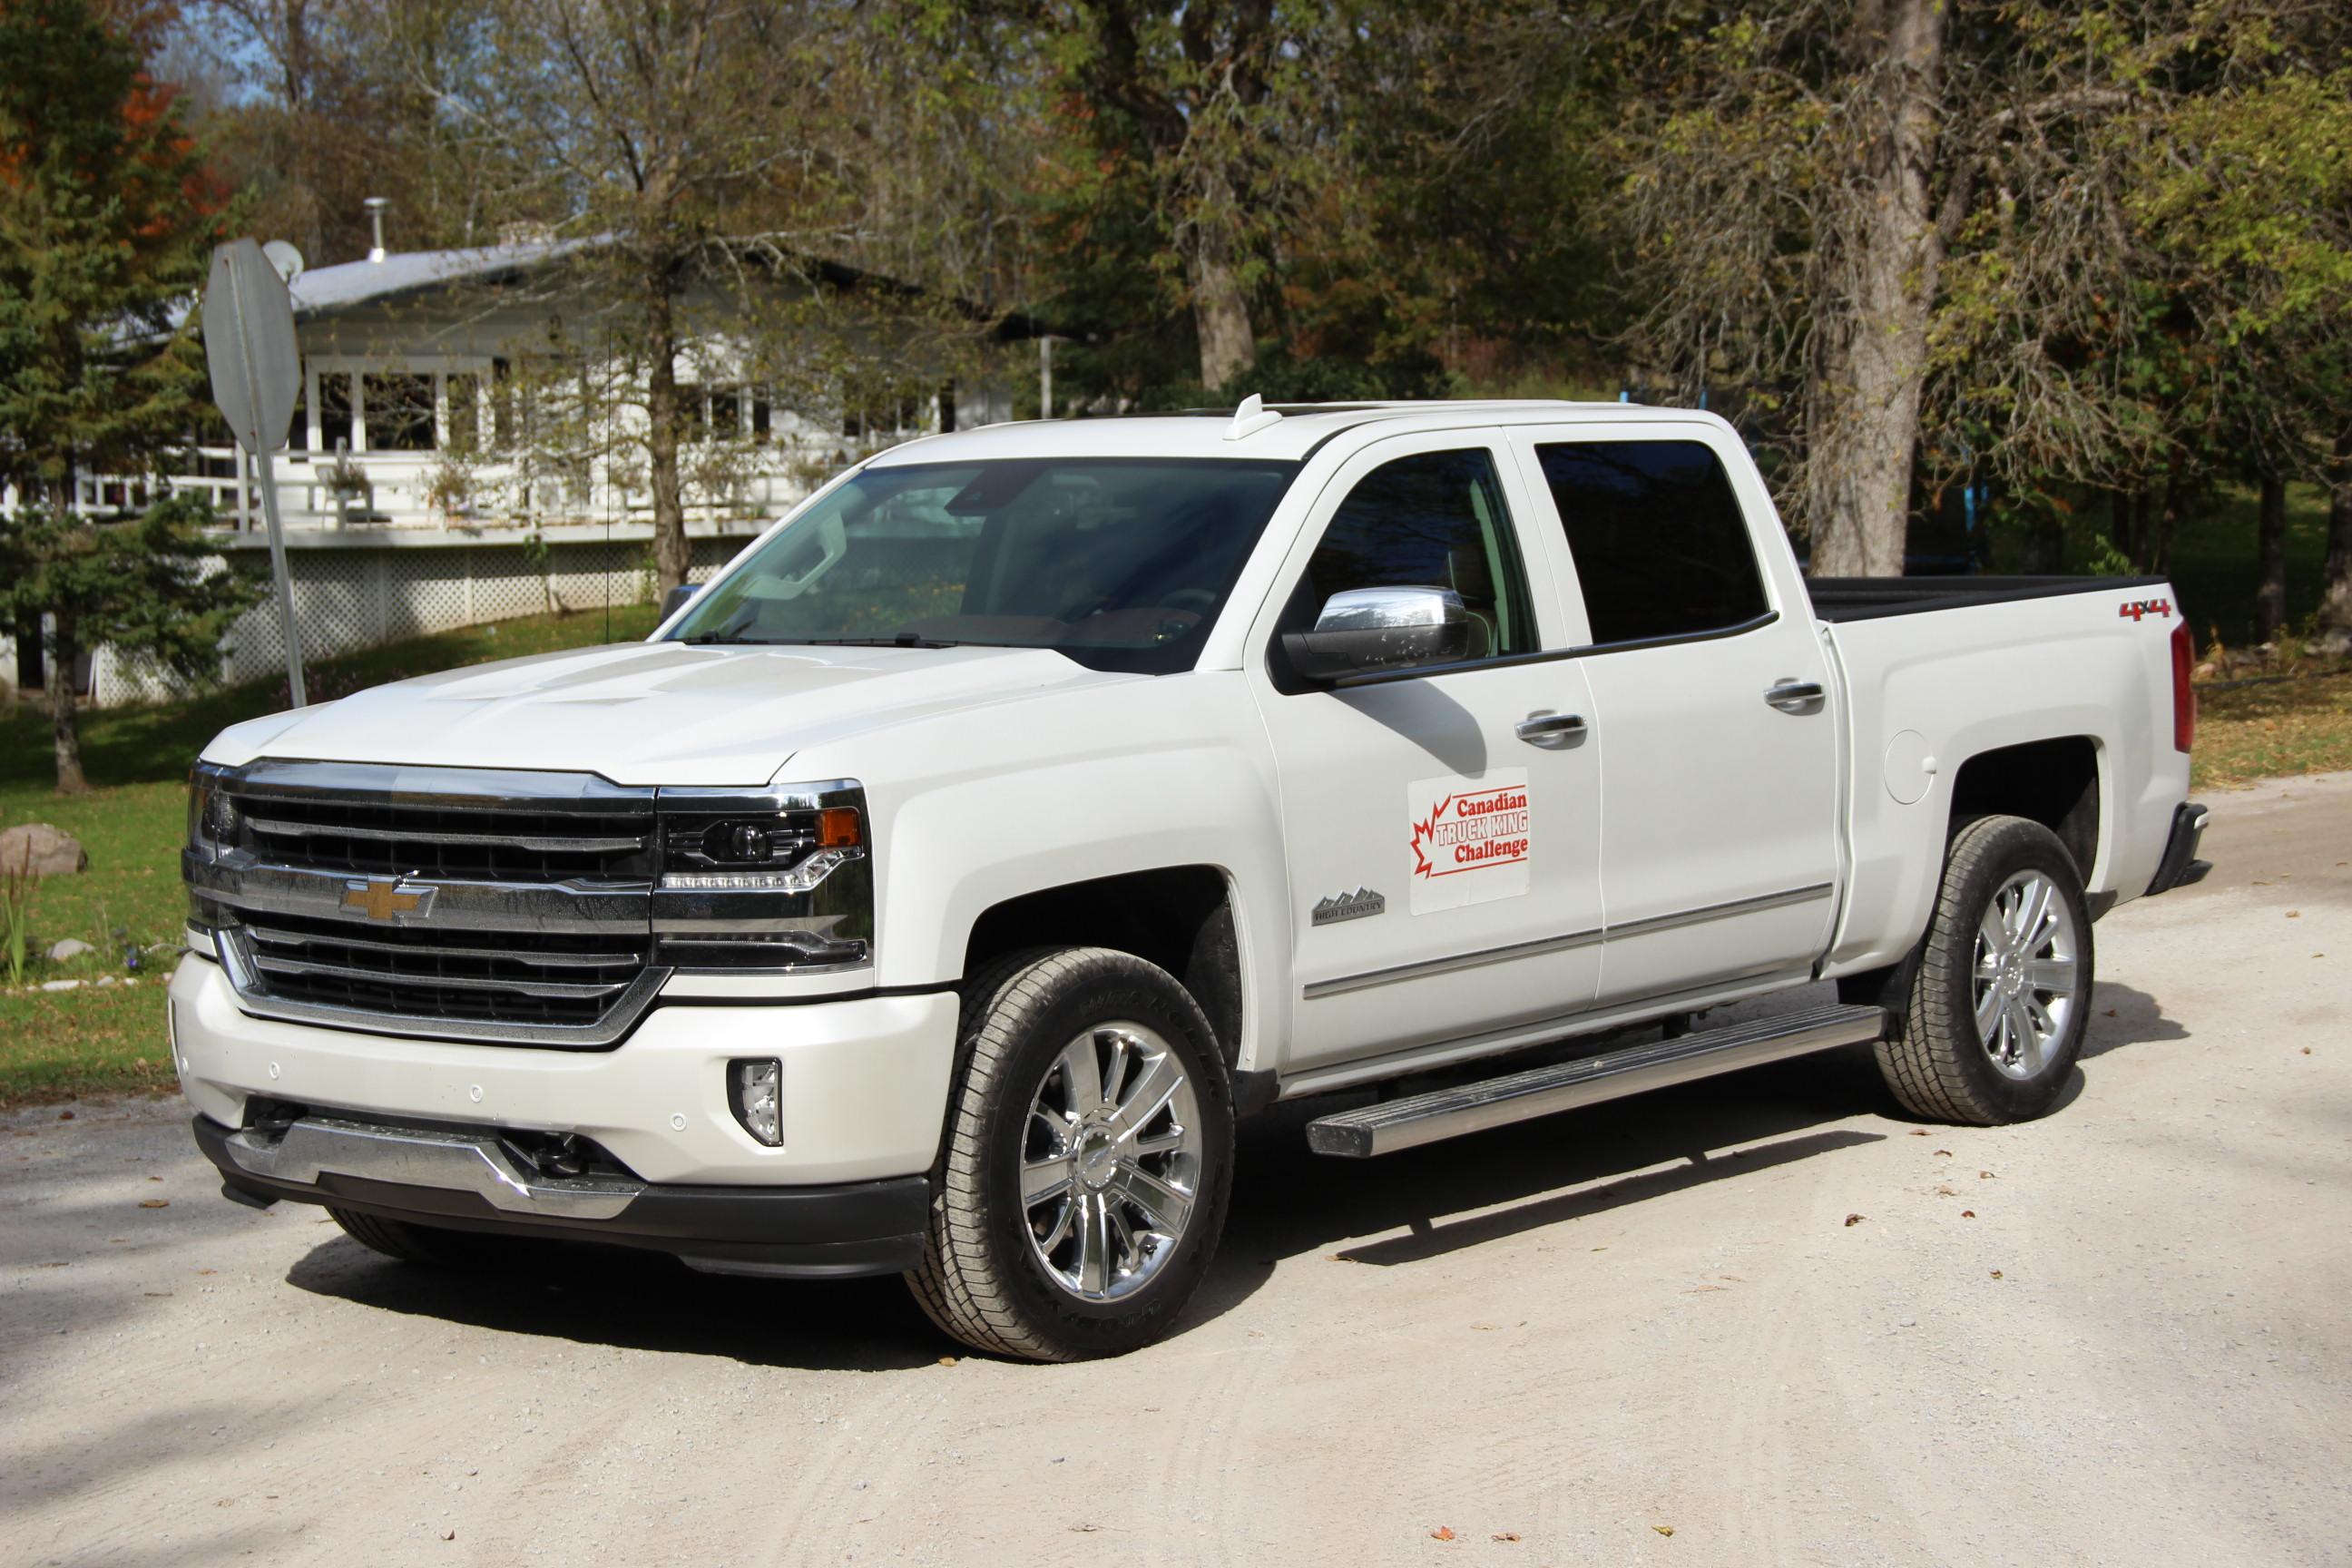 reaper bradpaisley on silverado content truck personalization gm other strong sale sema trucks us for pages shows concepts news detail en chevrolet media autoshows nov